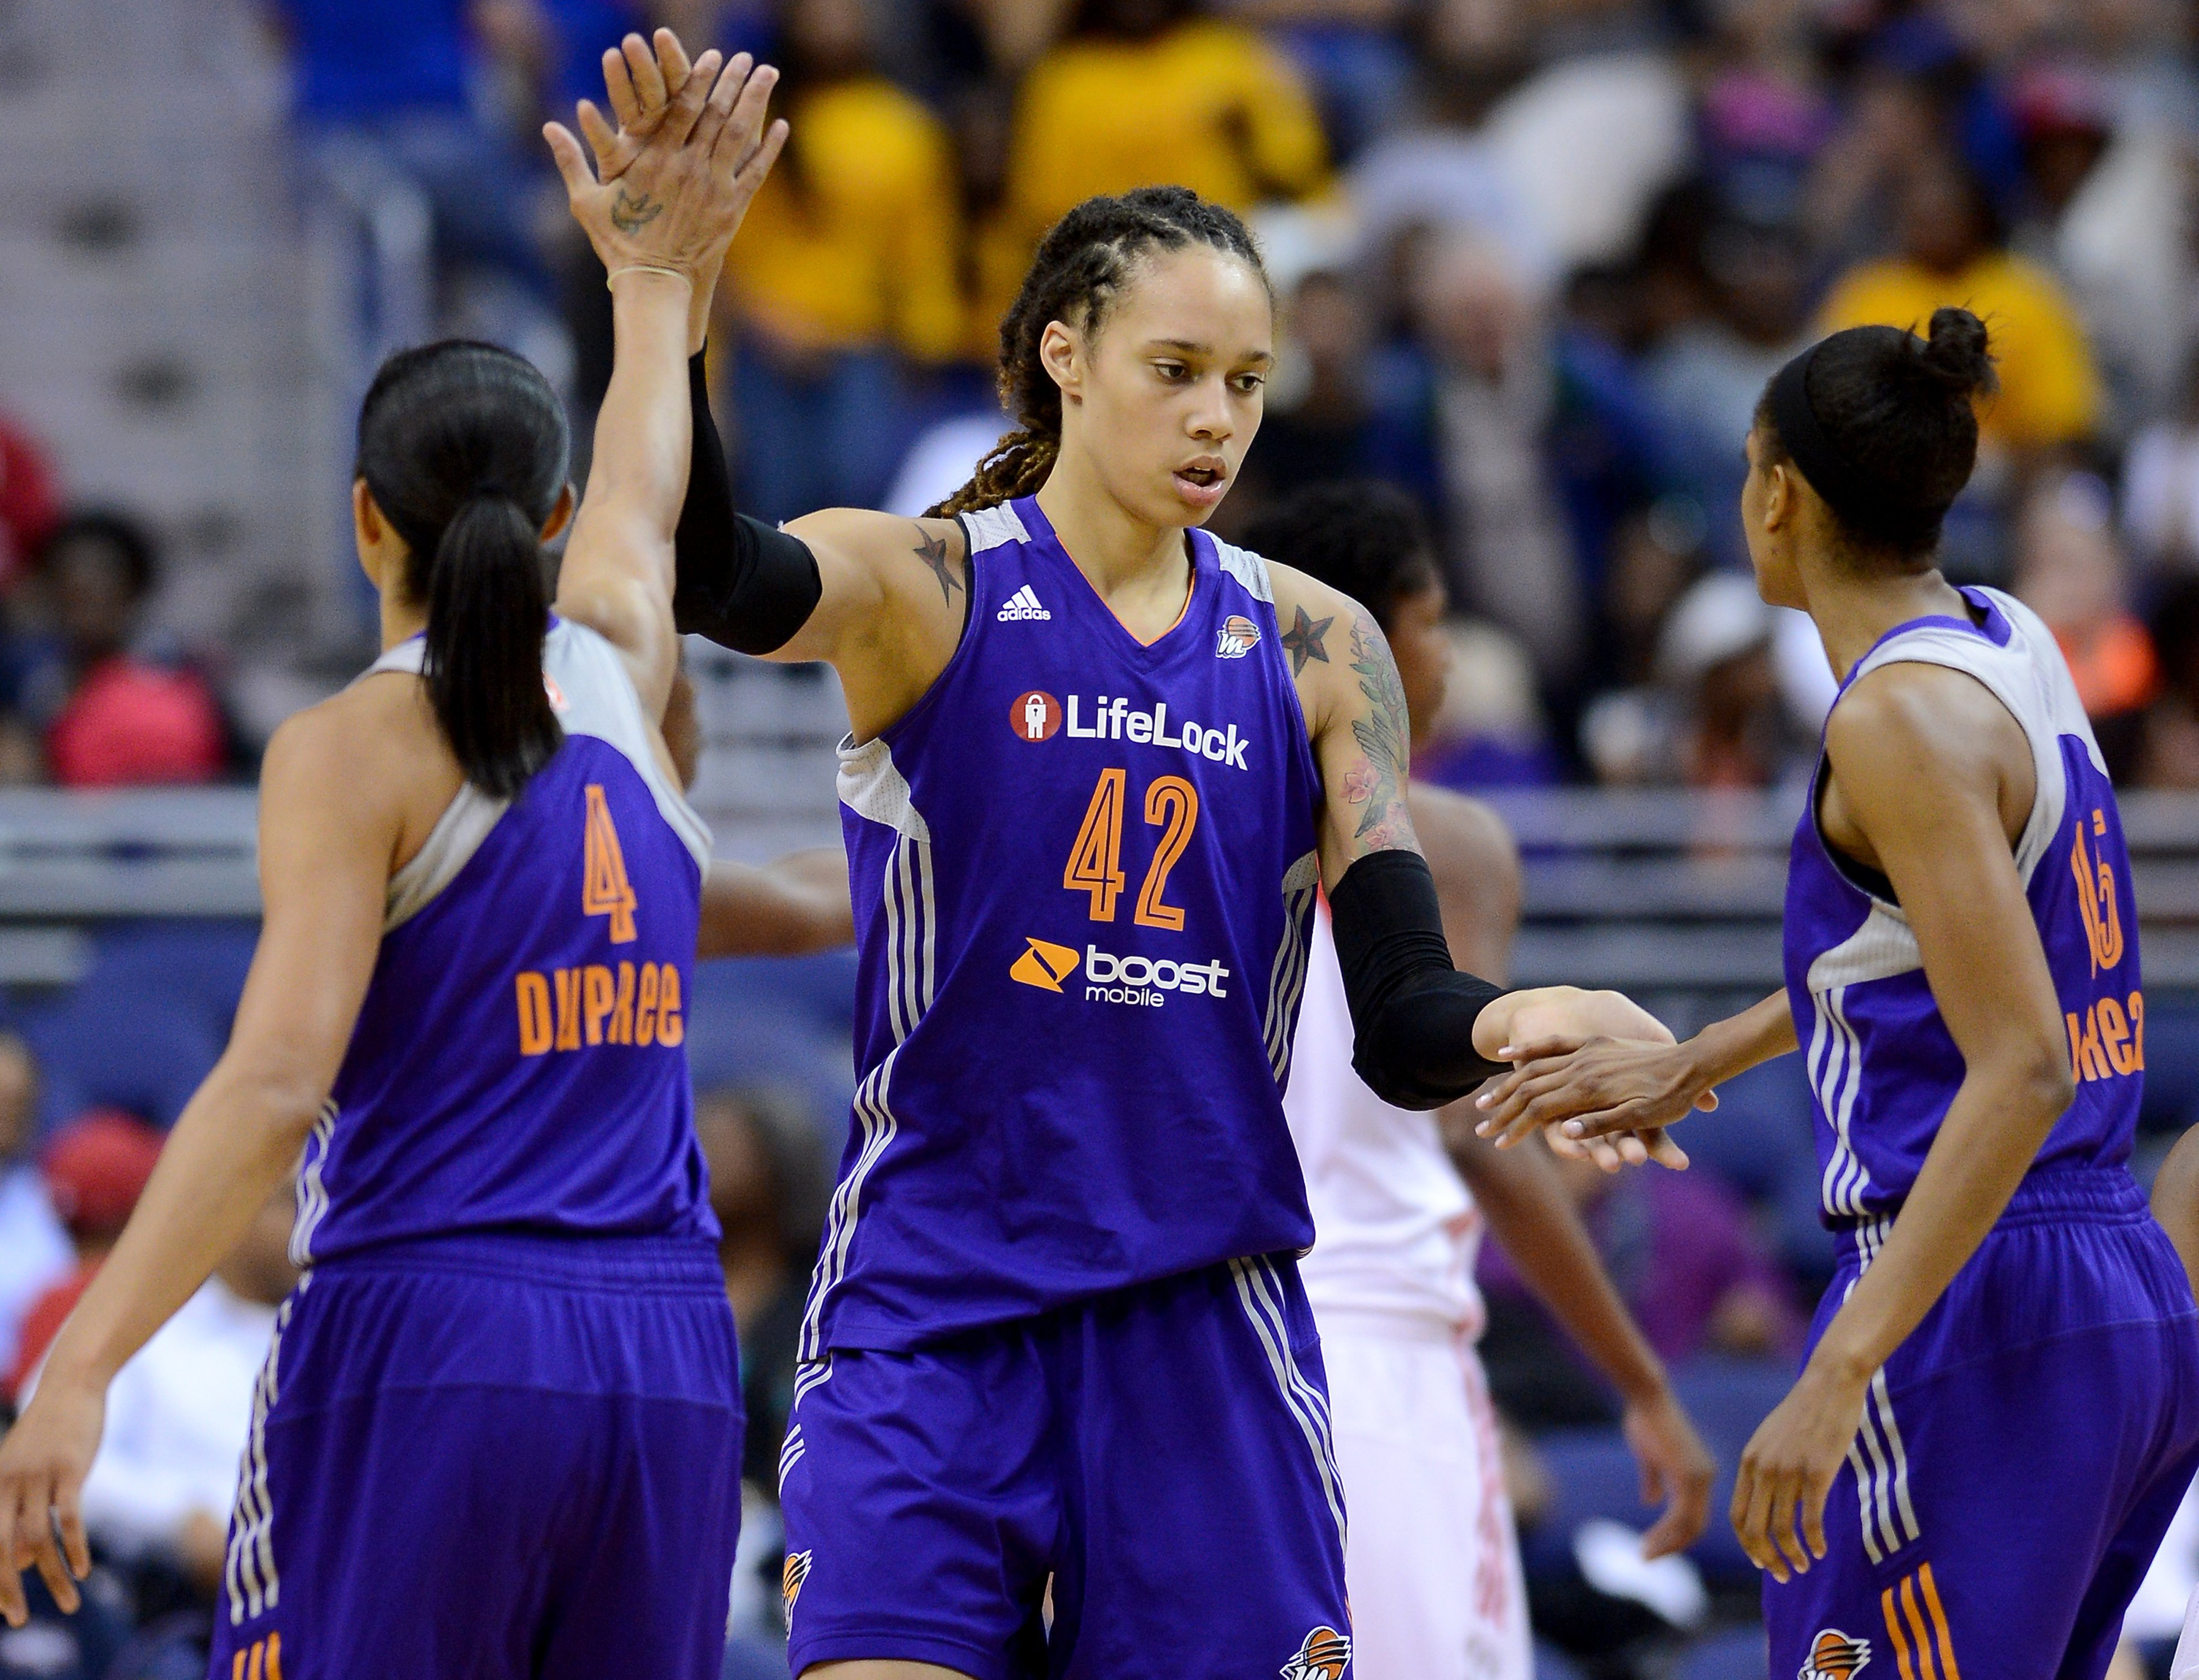 Phoenix Mercury Brittney Griner center (42) celebrates with teammates Candice Dupree (4) and Briana Gilbreath (15), after she scored and drew a foul against the Washington Mystics in the third quarter at the Verizon Center in Washington, D.C., Thursday, June 27, 2013,